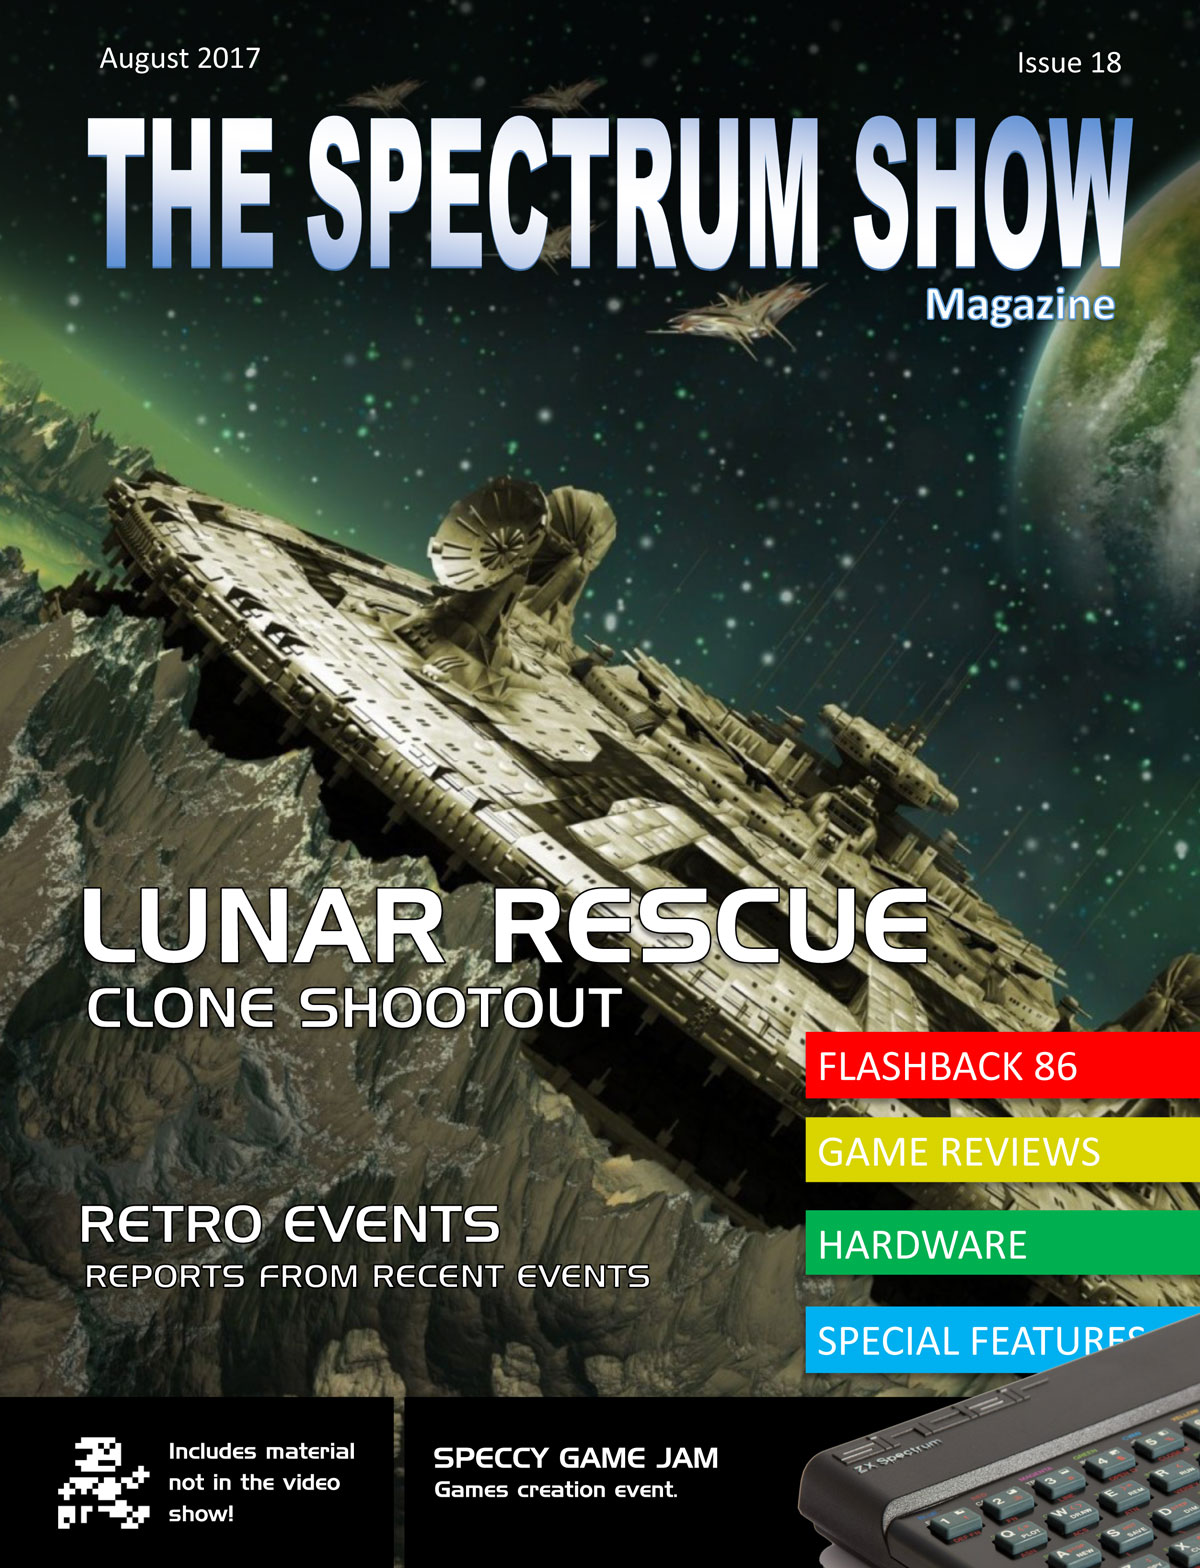 The Spectrum Show Magazine no 18